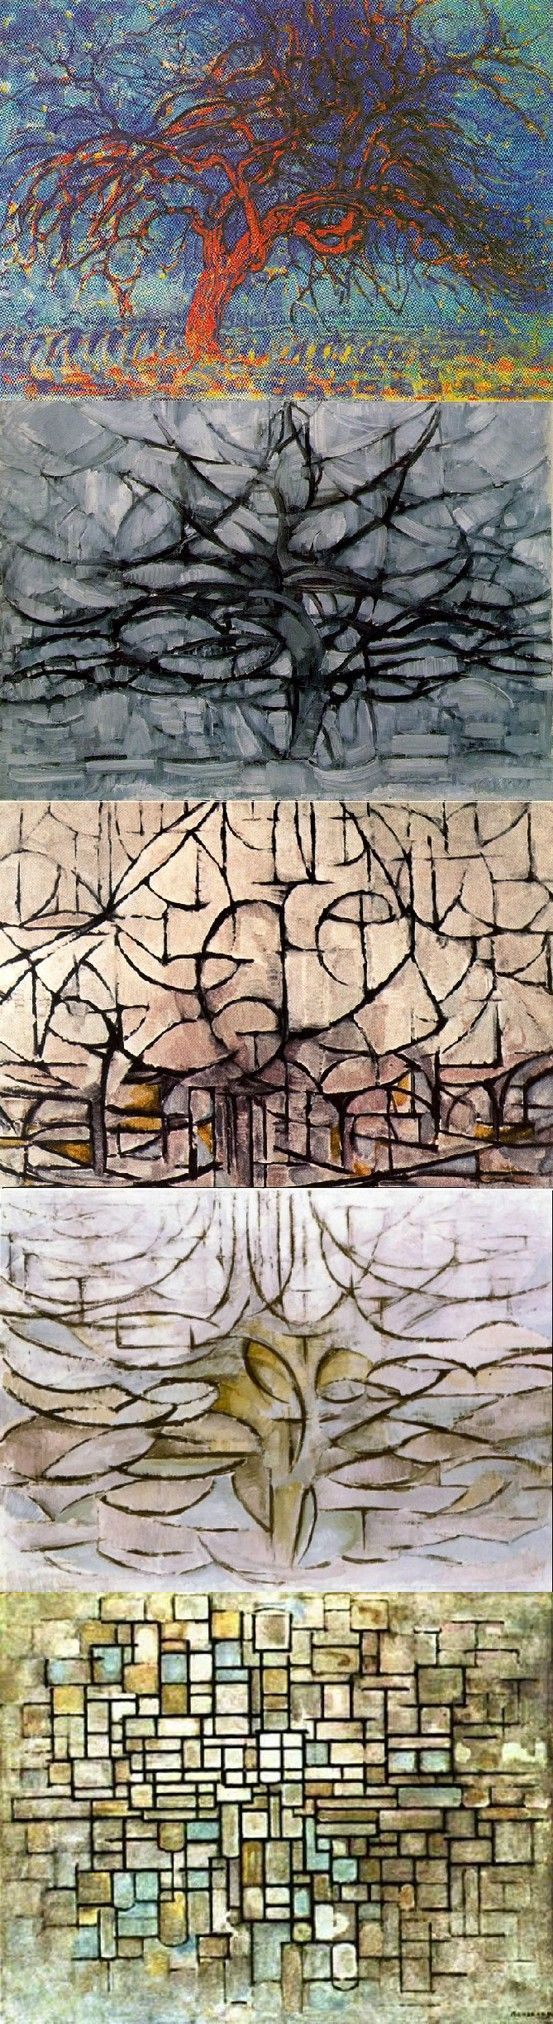 Mondrian's Trees My favorite series of paintings. Love the point between representation and abstraction and the still painterly style.